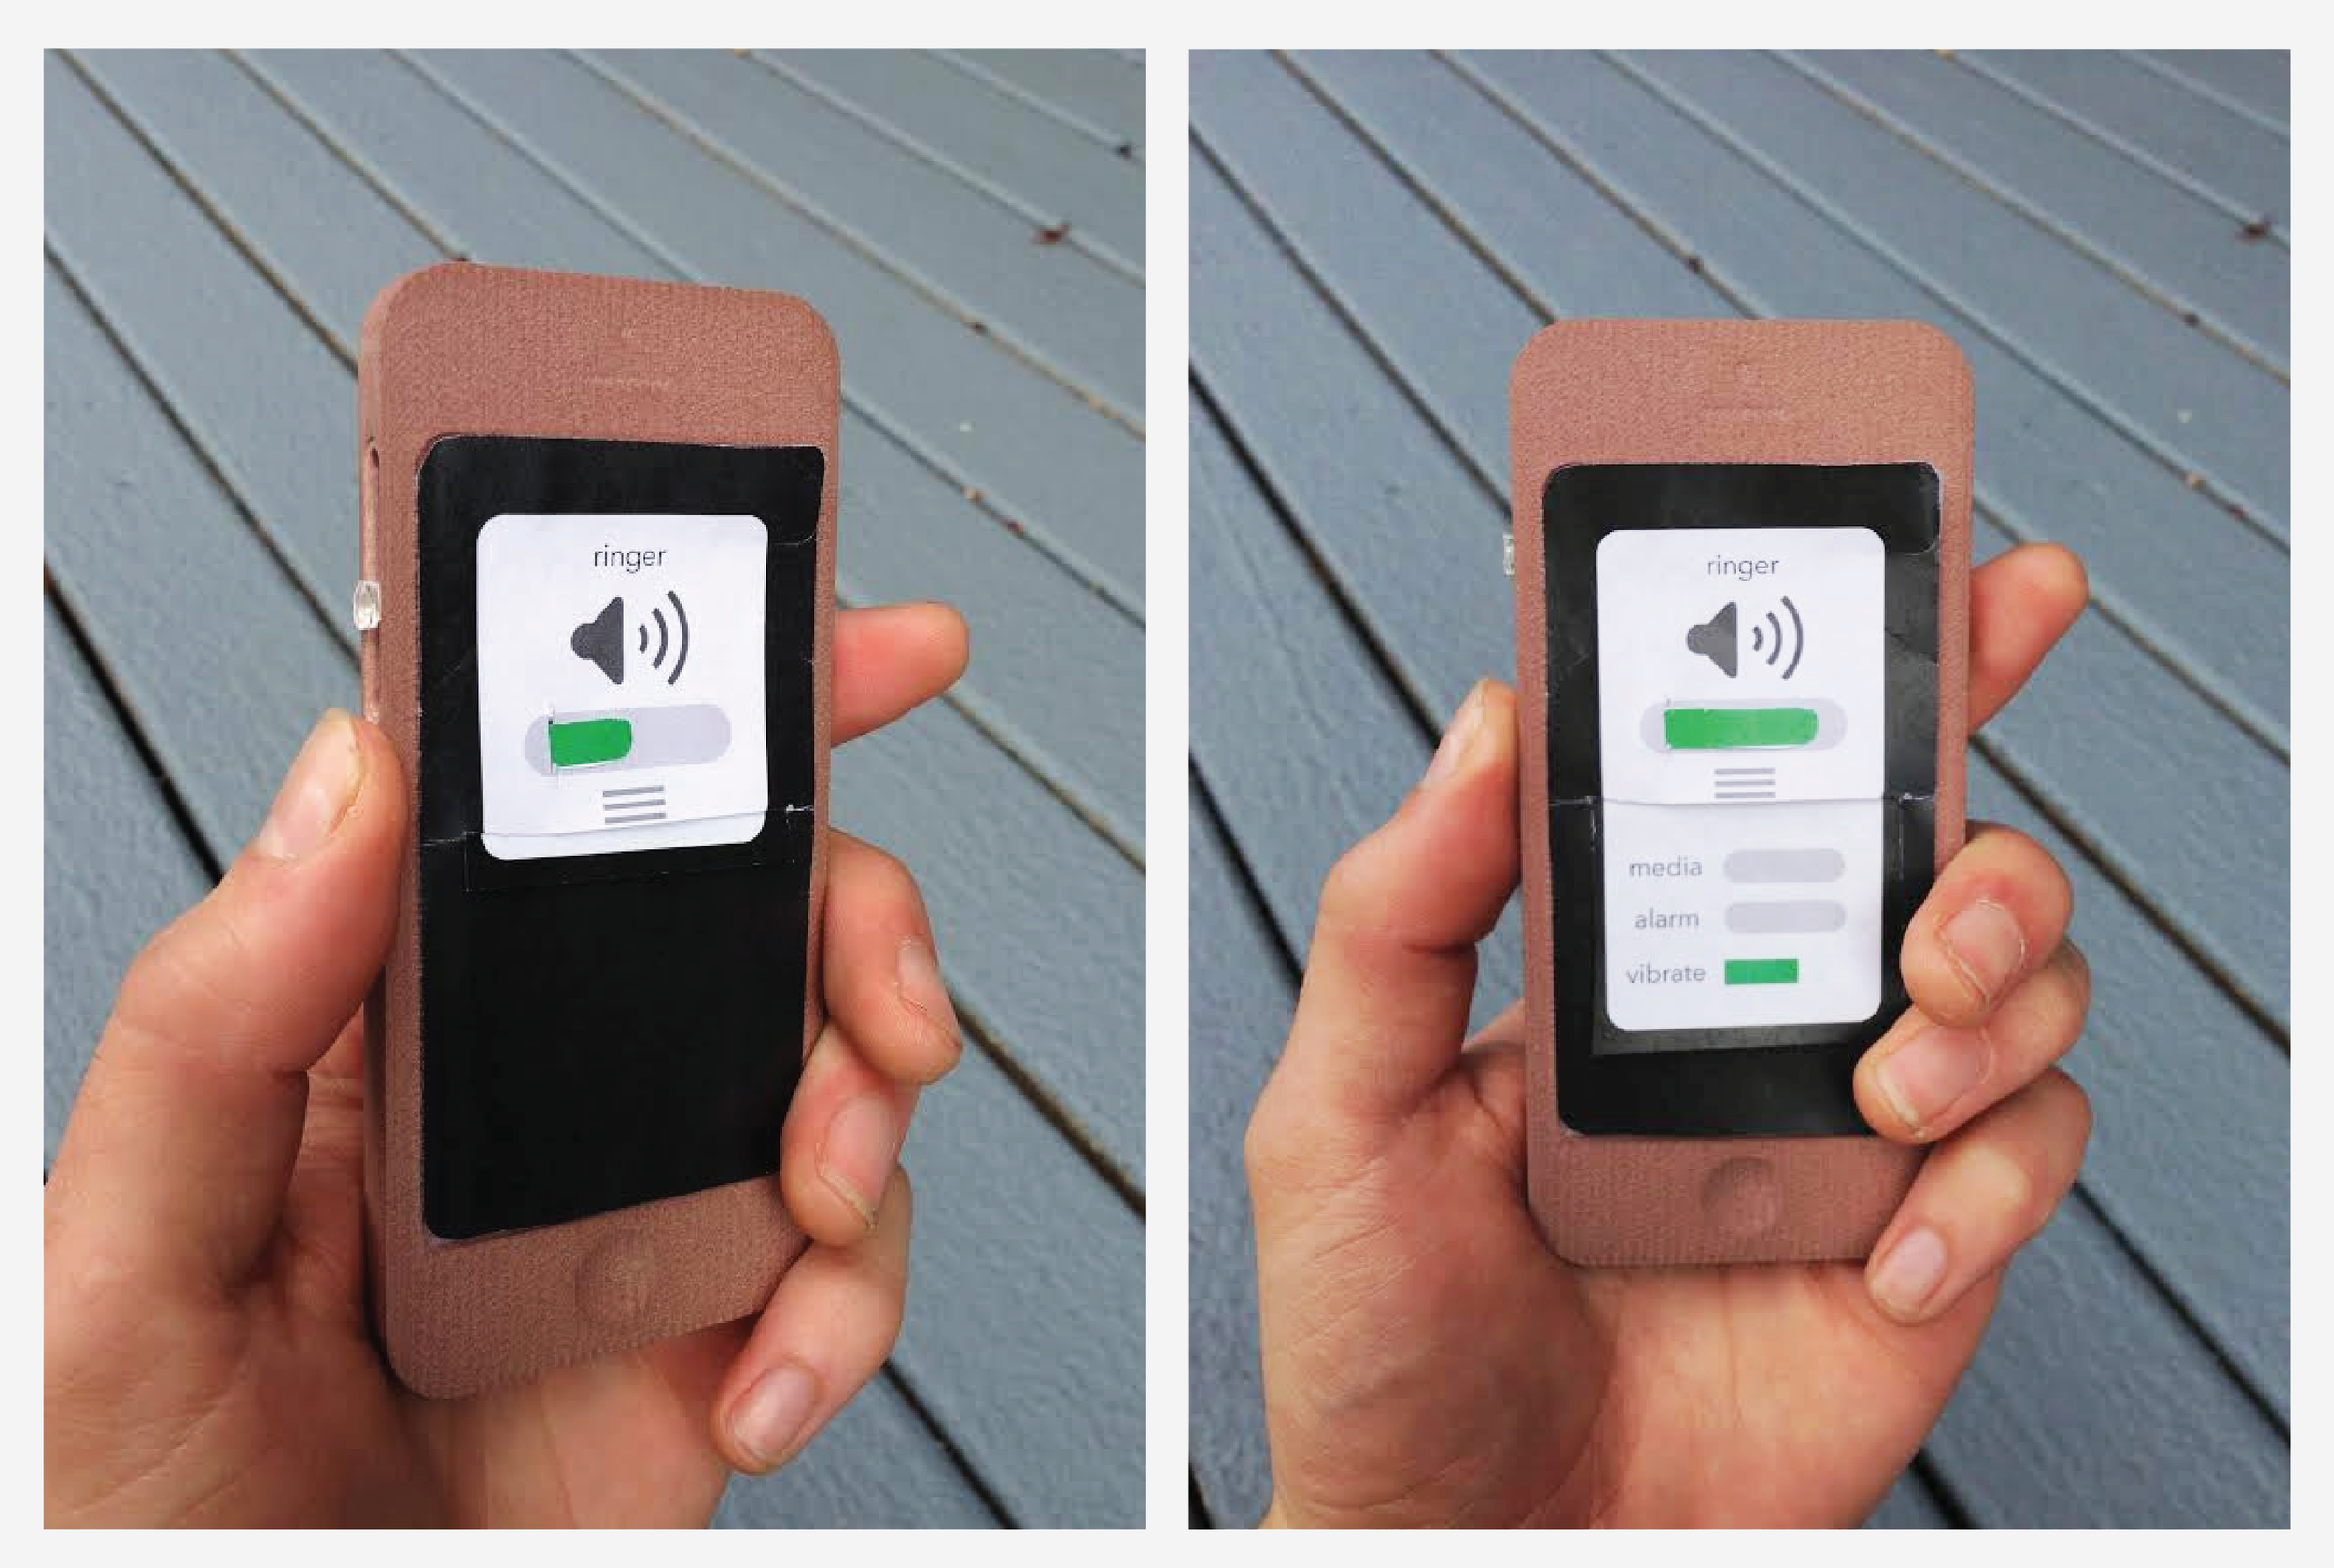 A low fidelity prototype. This phone model was made on Solidworks and CNC machined. Includes a functioning side slider cut with a milling machine, and a laser cut acrylic sliding button. Paper sliding menus simulate interactive screen features.